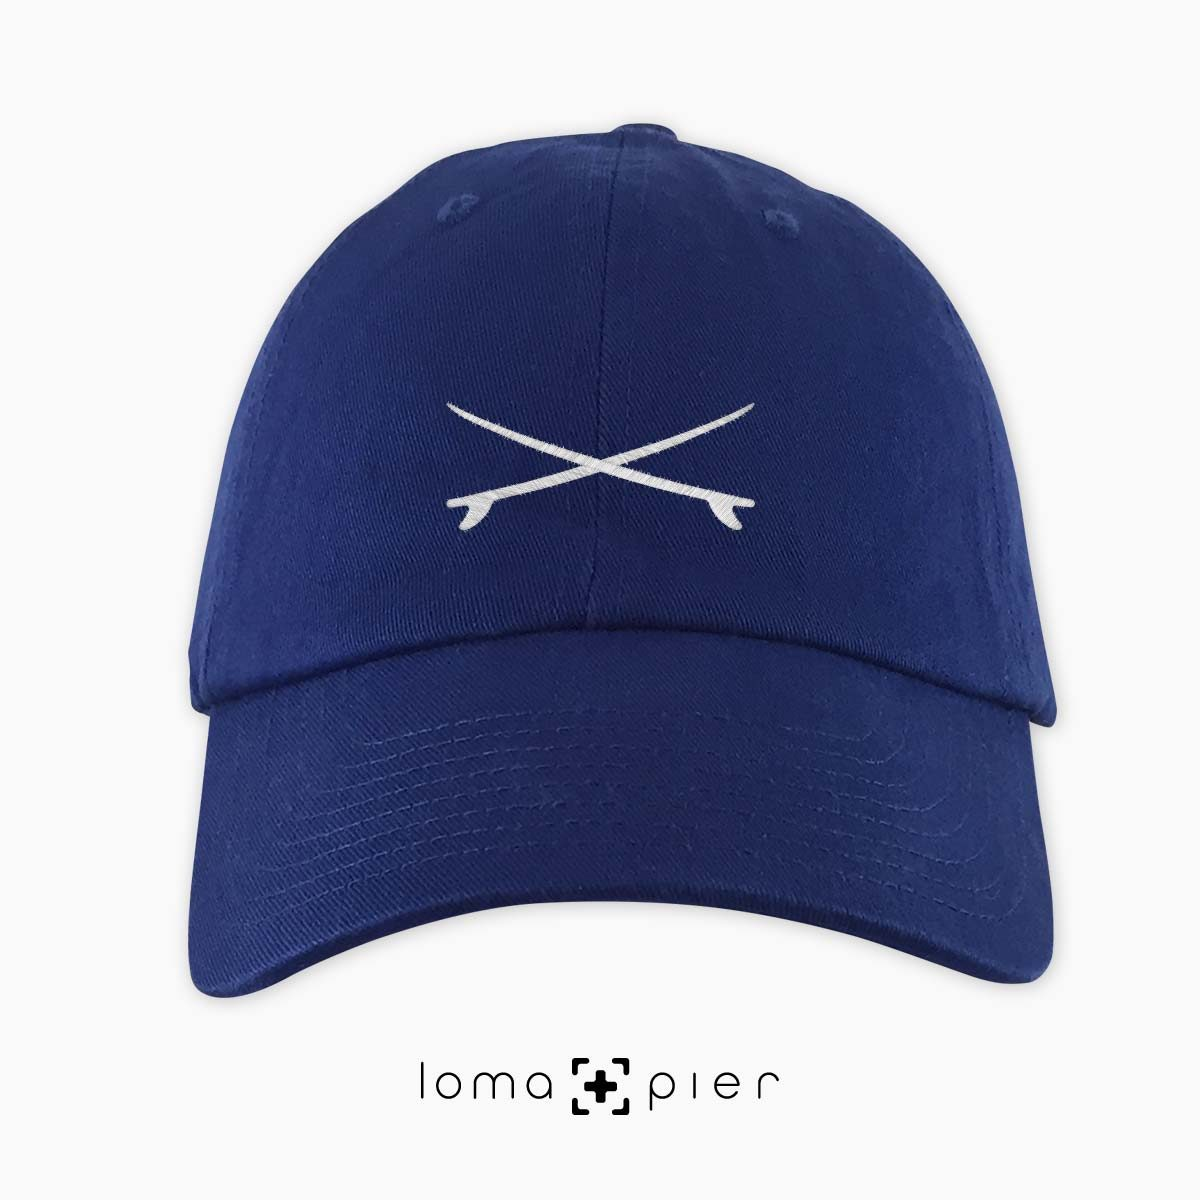 X MARKS THE SPOT icon embroidered on a royal blue dad hat by loma+pier hat store made in the USA